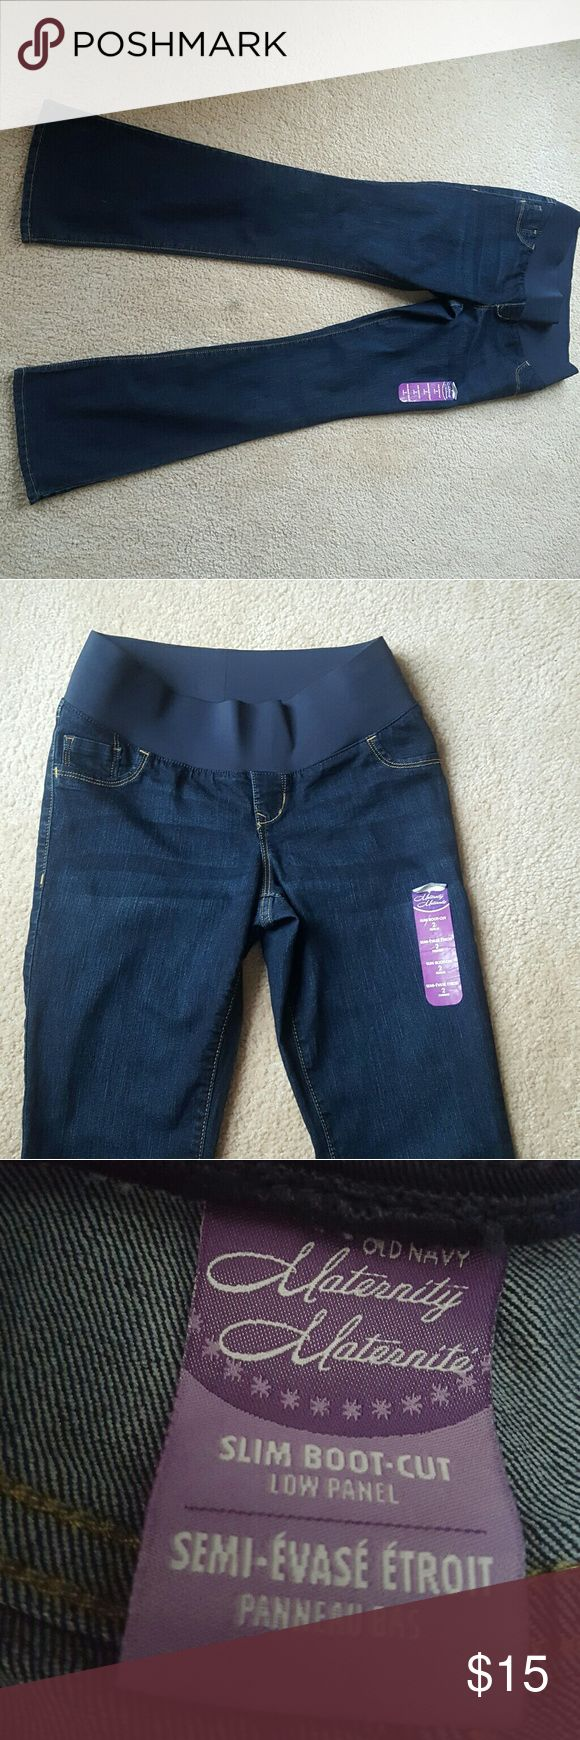 Old Navy Maternity Jeans size 2 NWT NWT Old Navy Maternity Jeans, size 2, Dark wash denim, slim bootcut, low panel Old Navy Pants Boot Cut & Flare